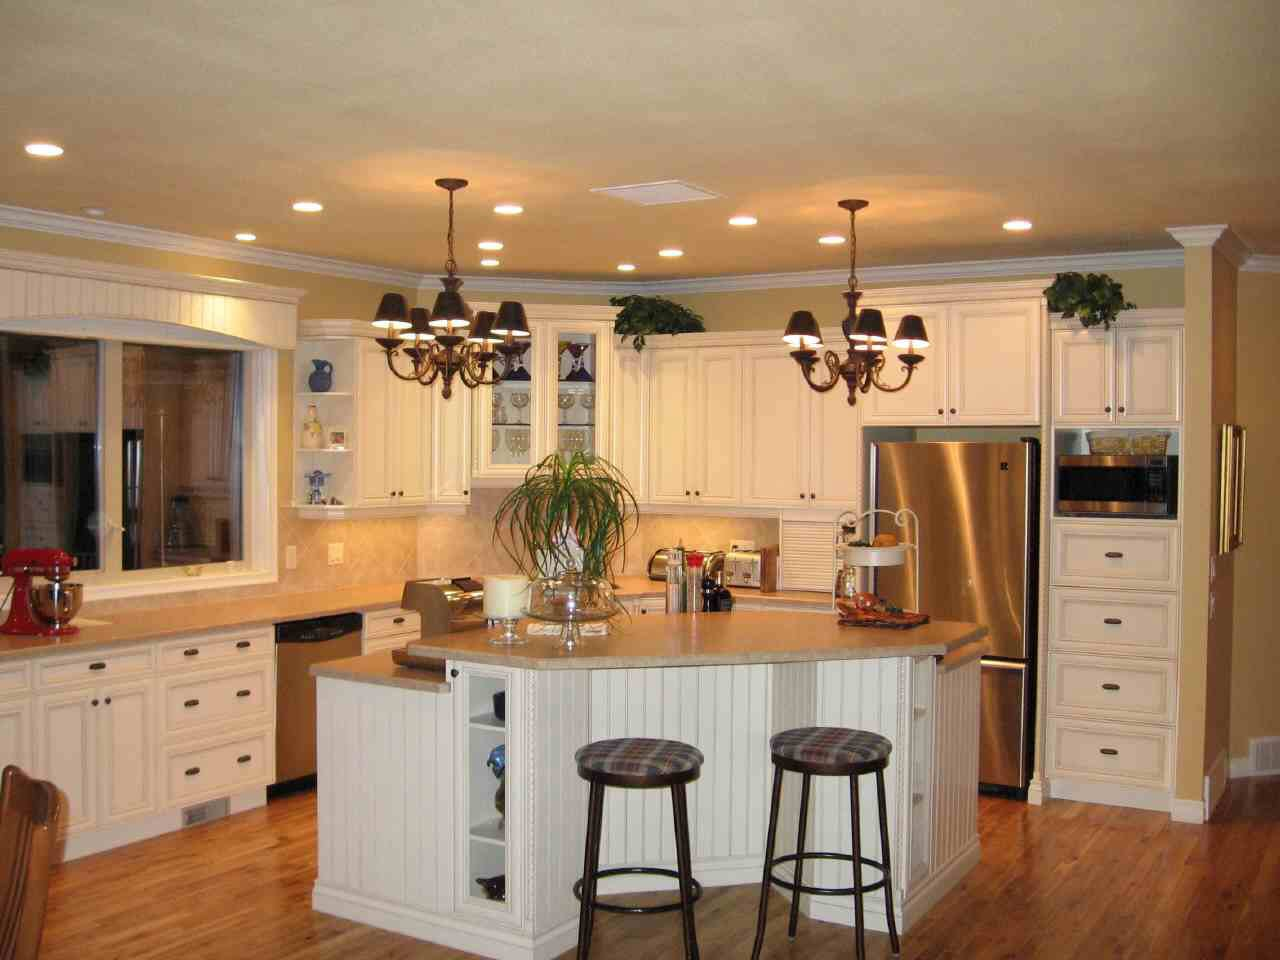 Top Kitchen Island Design Ideas for Small Kitchens 1280 x 960 · 109 kB · jpeg